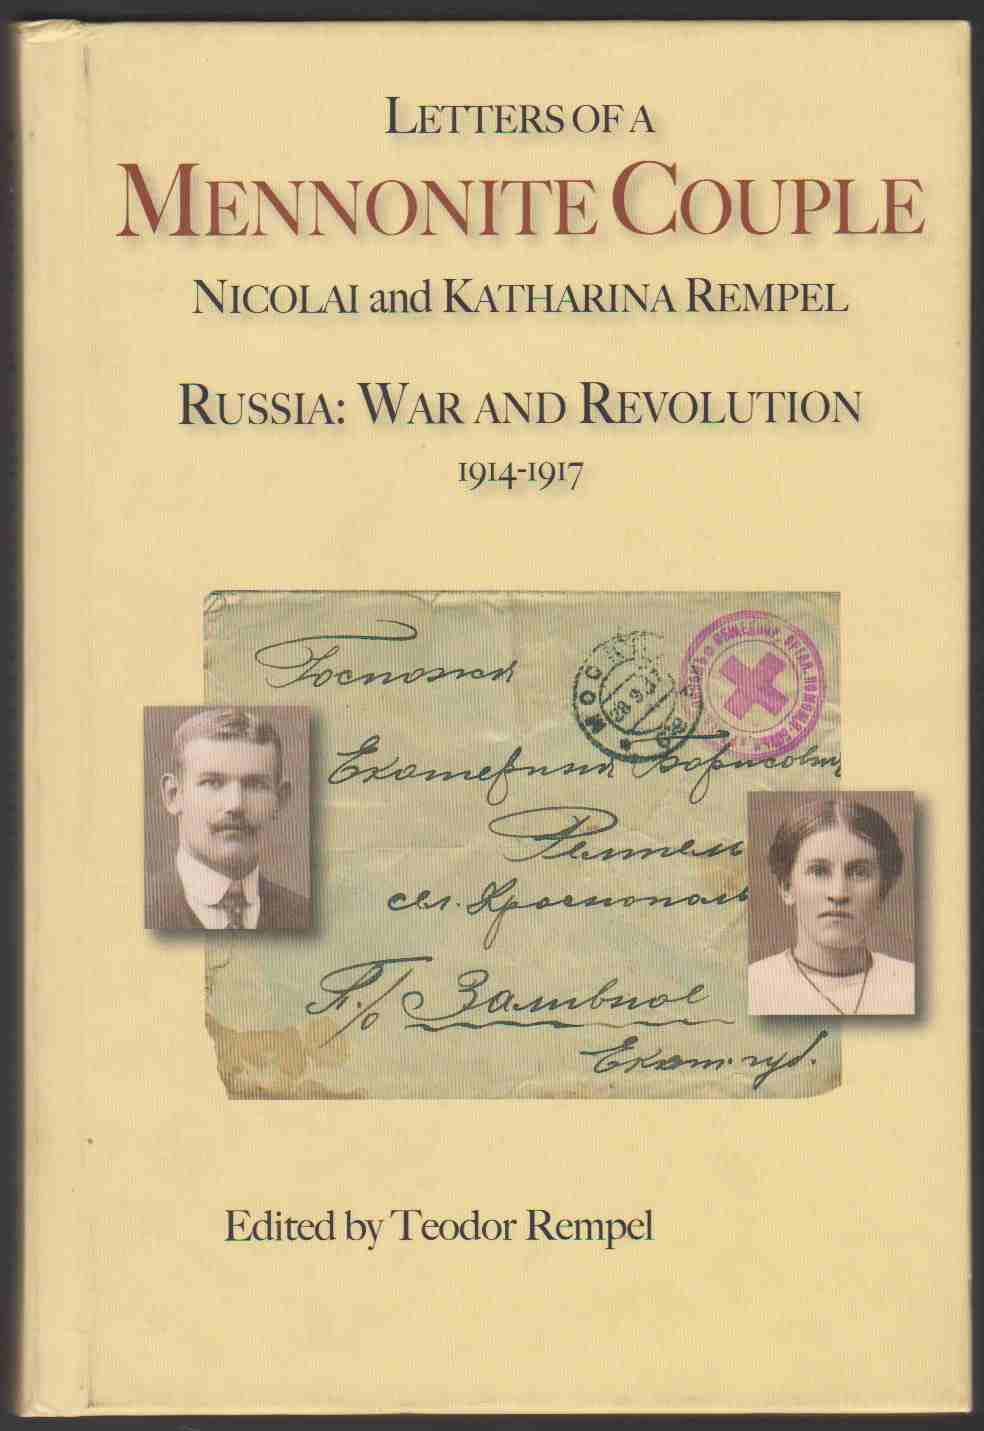 Image for LETTERS OF A MENNONITE COUPLE NICCOLAI AND KATHARINA REMPEL RUSSIA War and Revolution 1914-1917